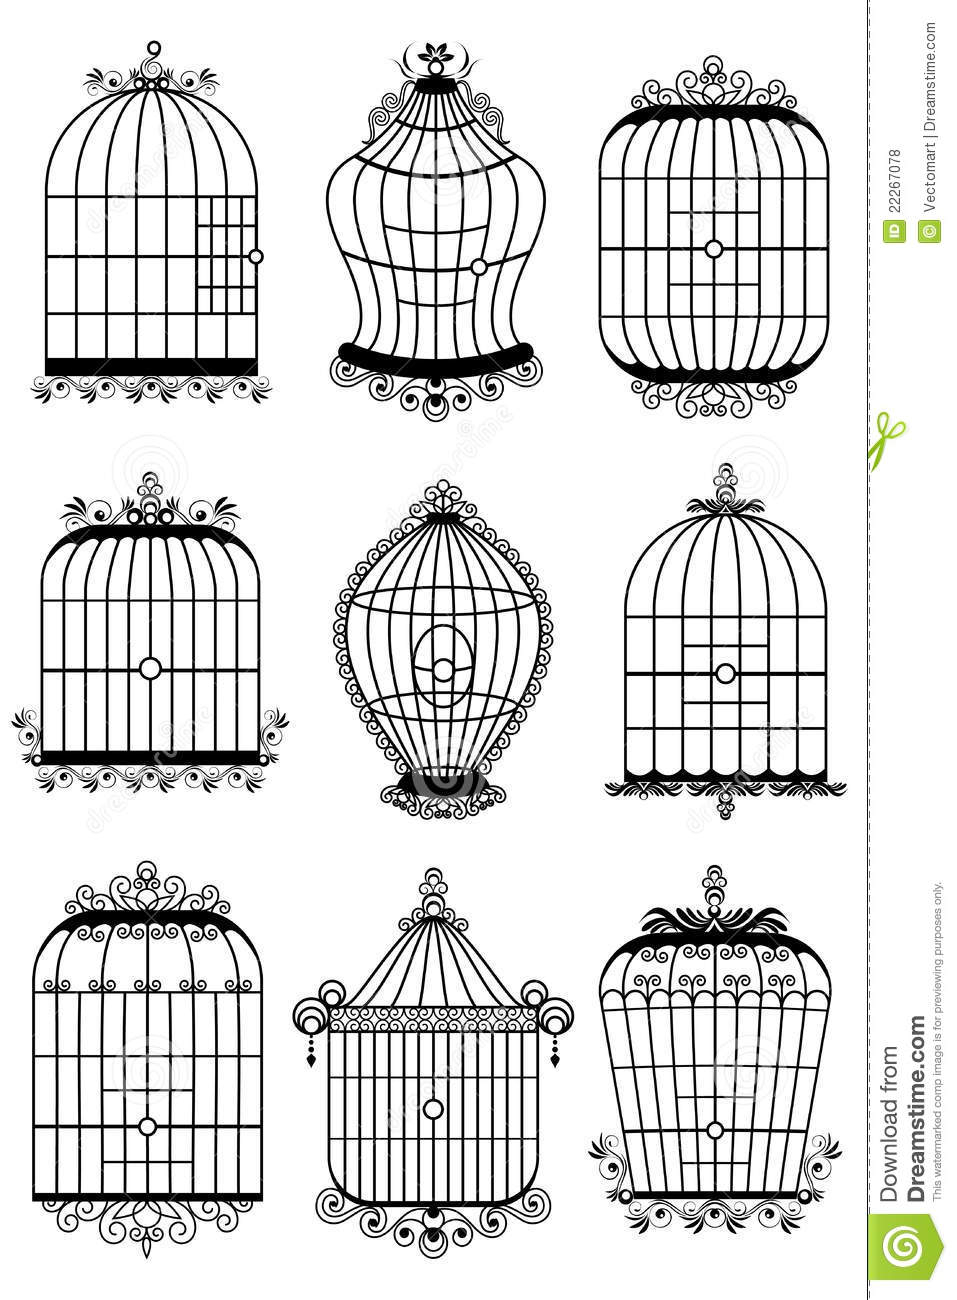 cage d 39 oiseau photos libres de droits image 22267078. Black Bedroom Furniture Sets. Home Design Ideas